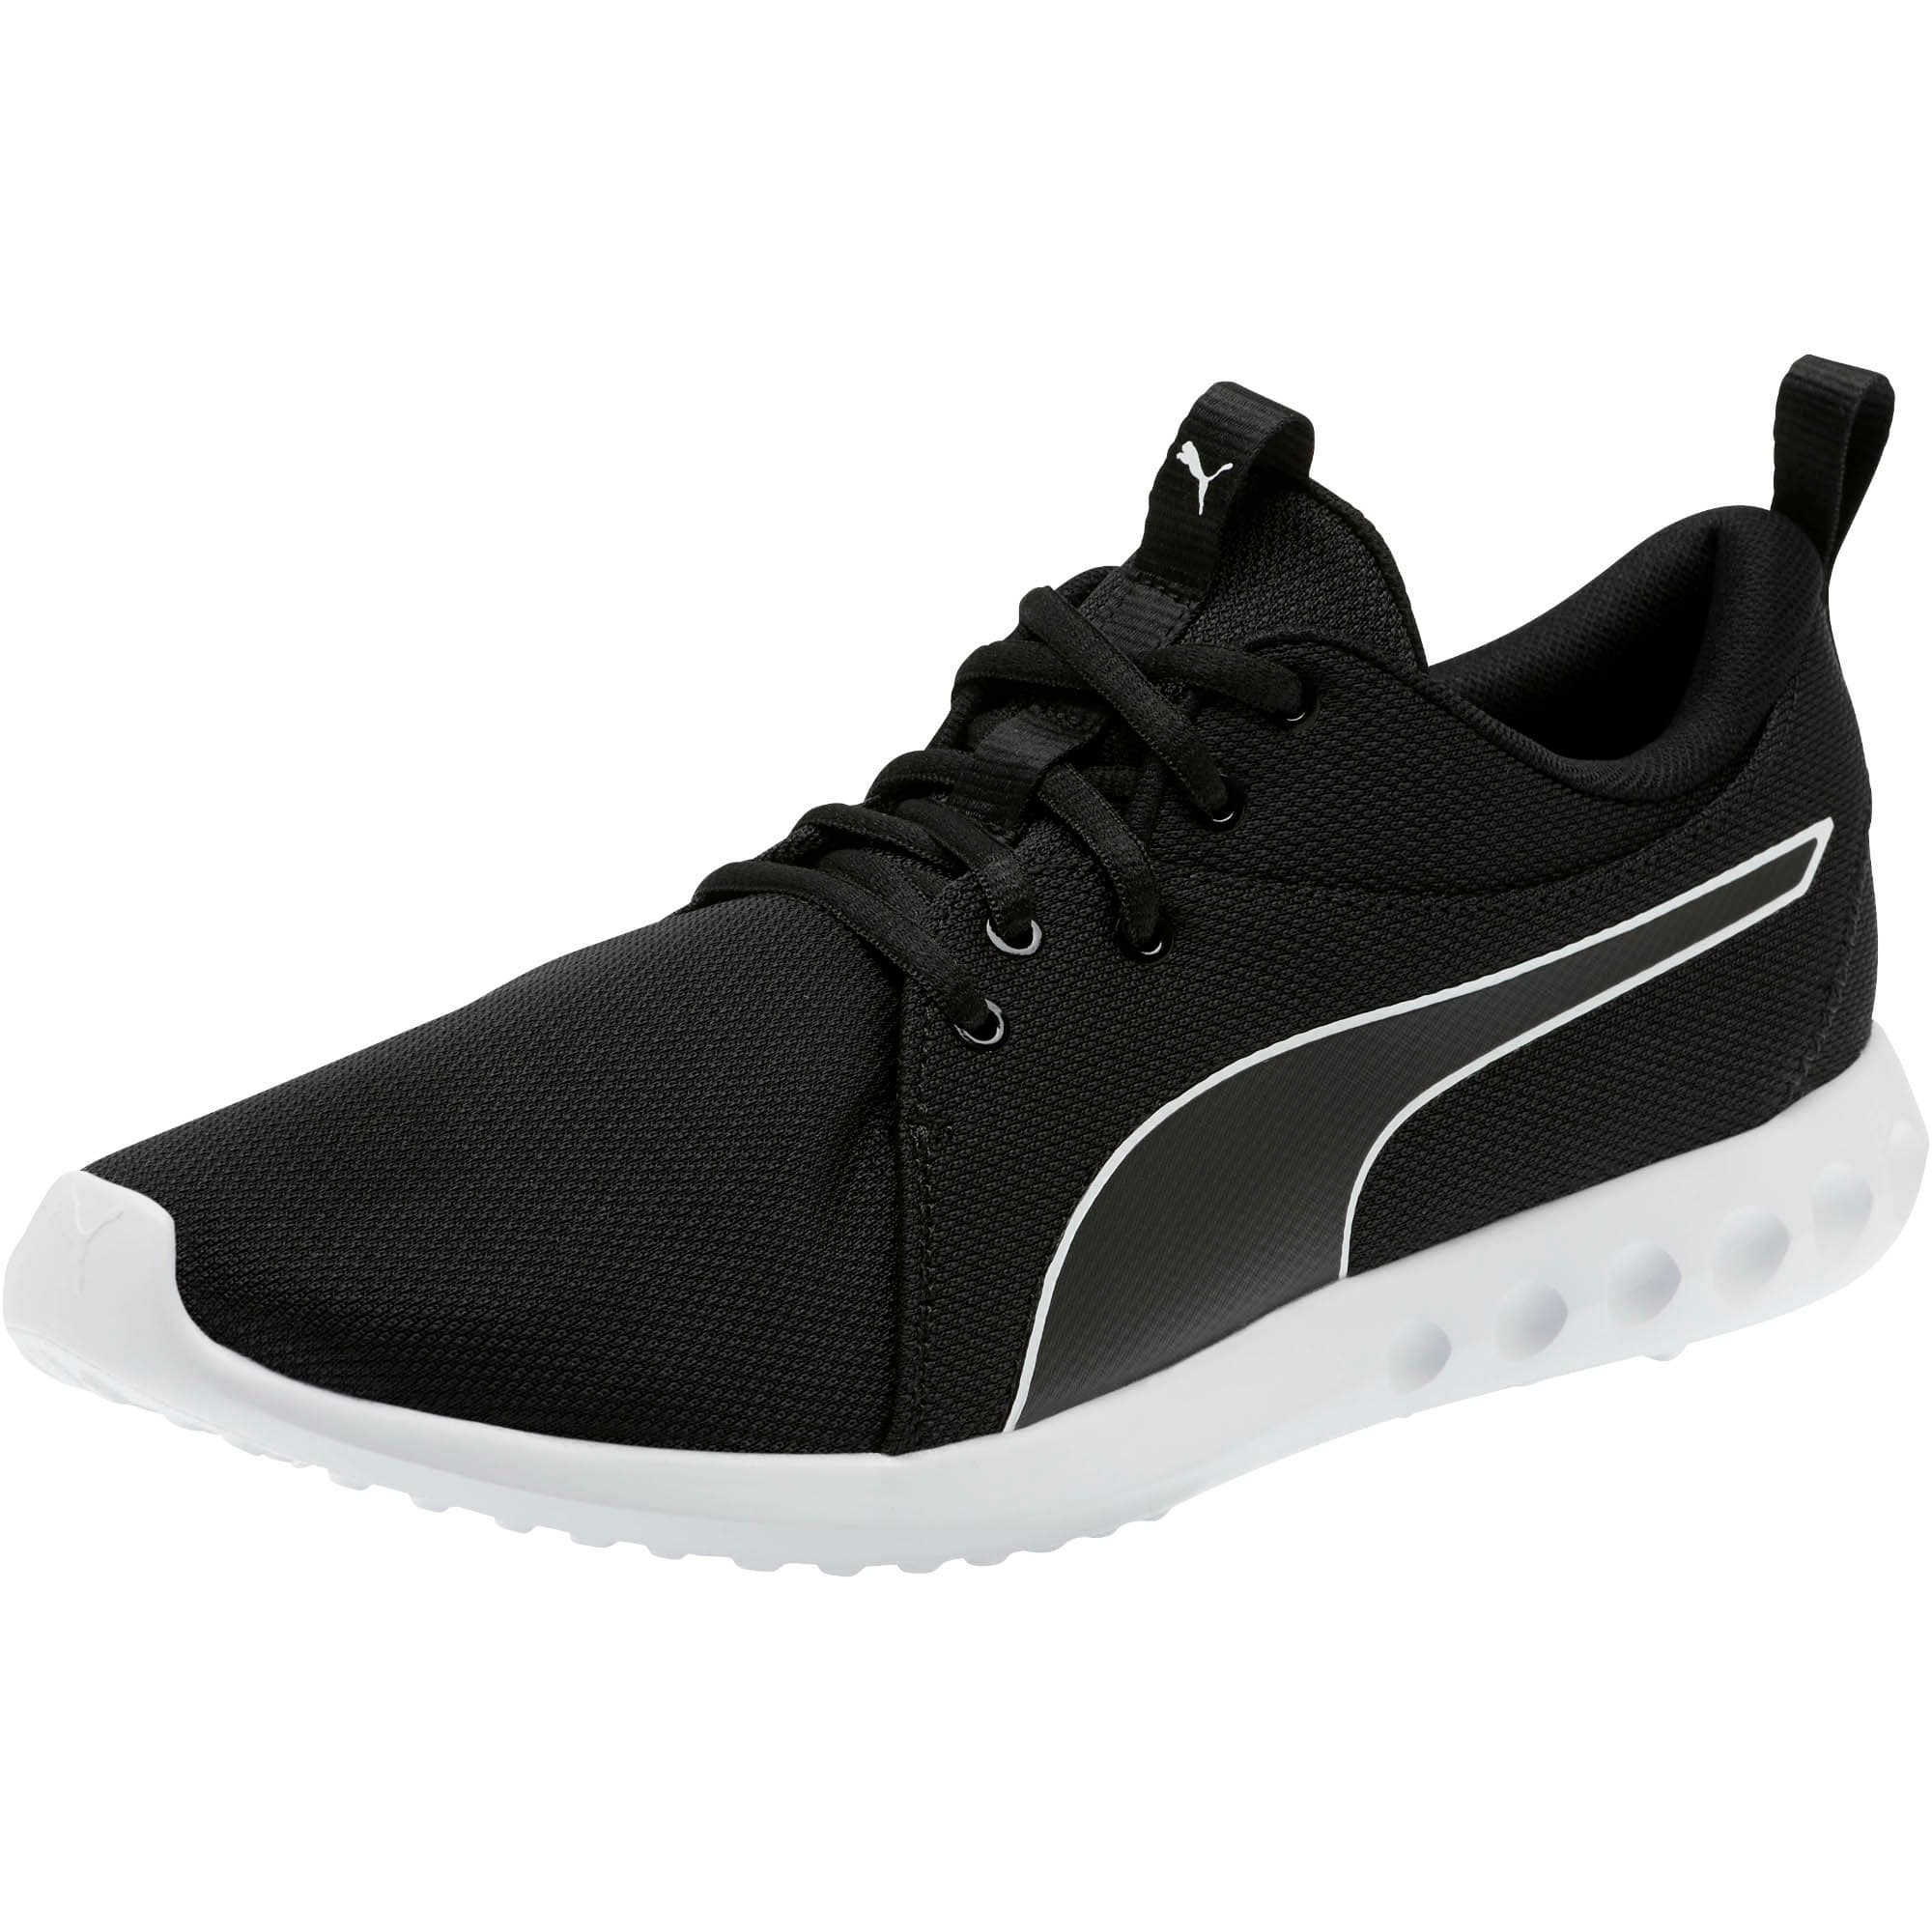 Thumbnail 1 of Carson 2 Cosmo Men's Running Shoes, Puma Black-Puma White, medium